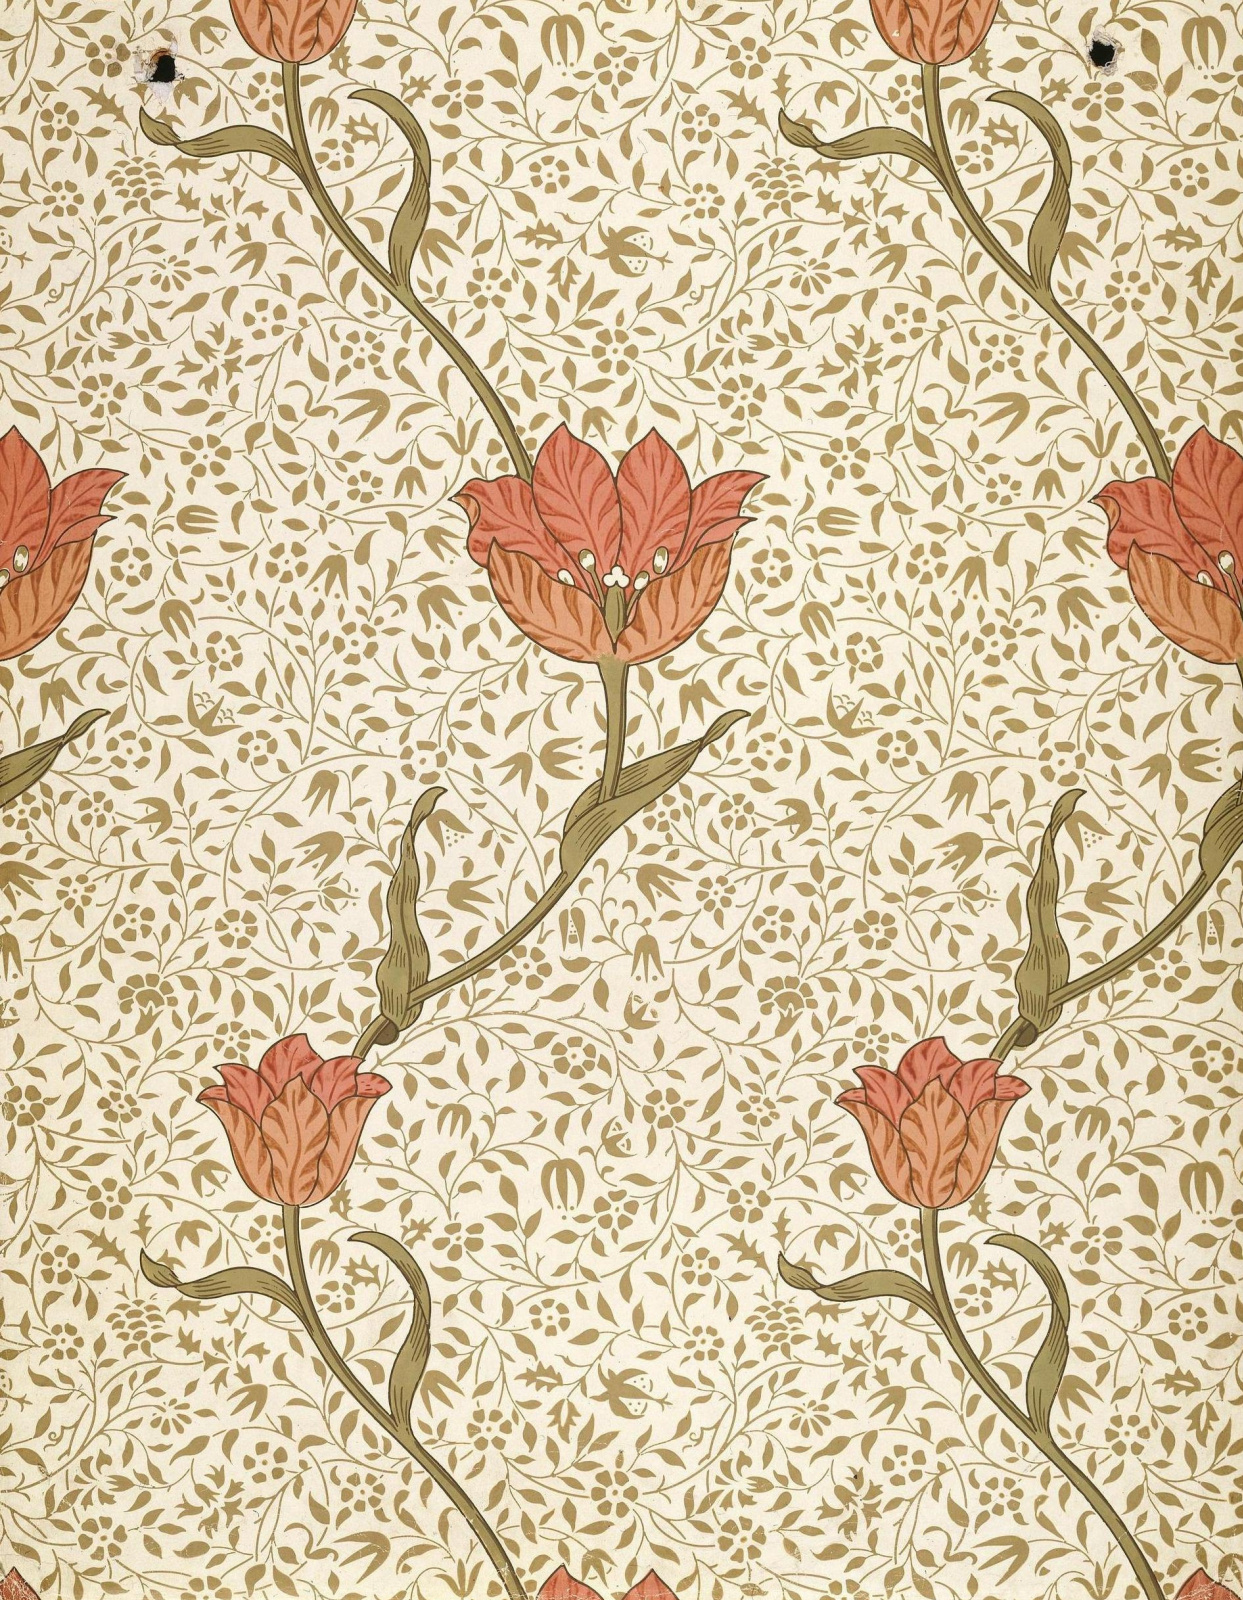 William Morris.  Jardin des tulipes